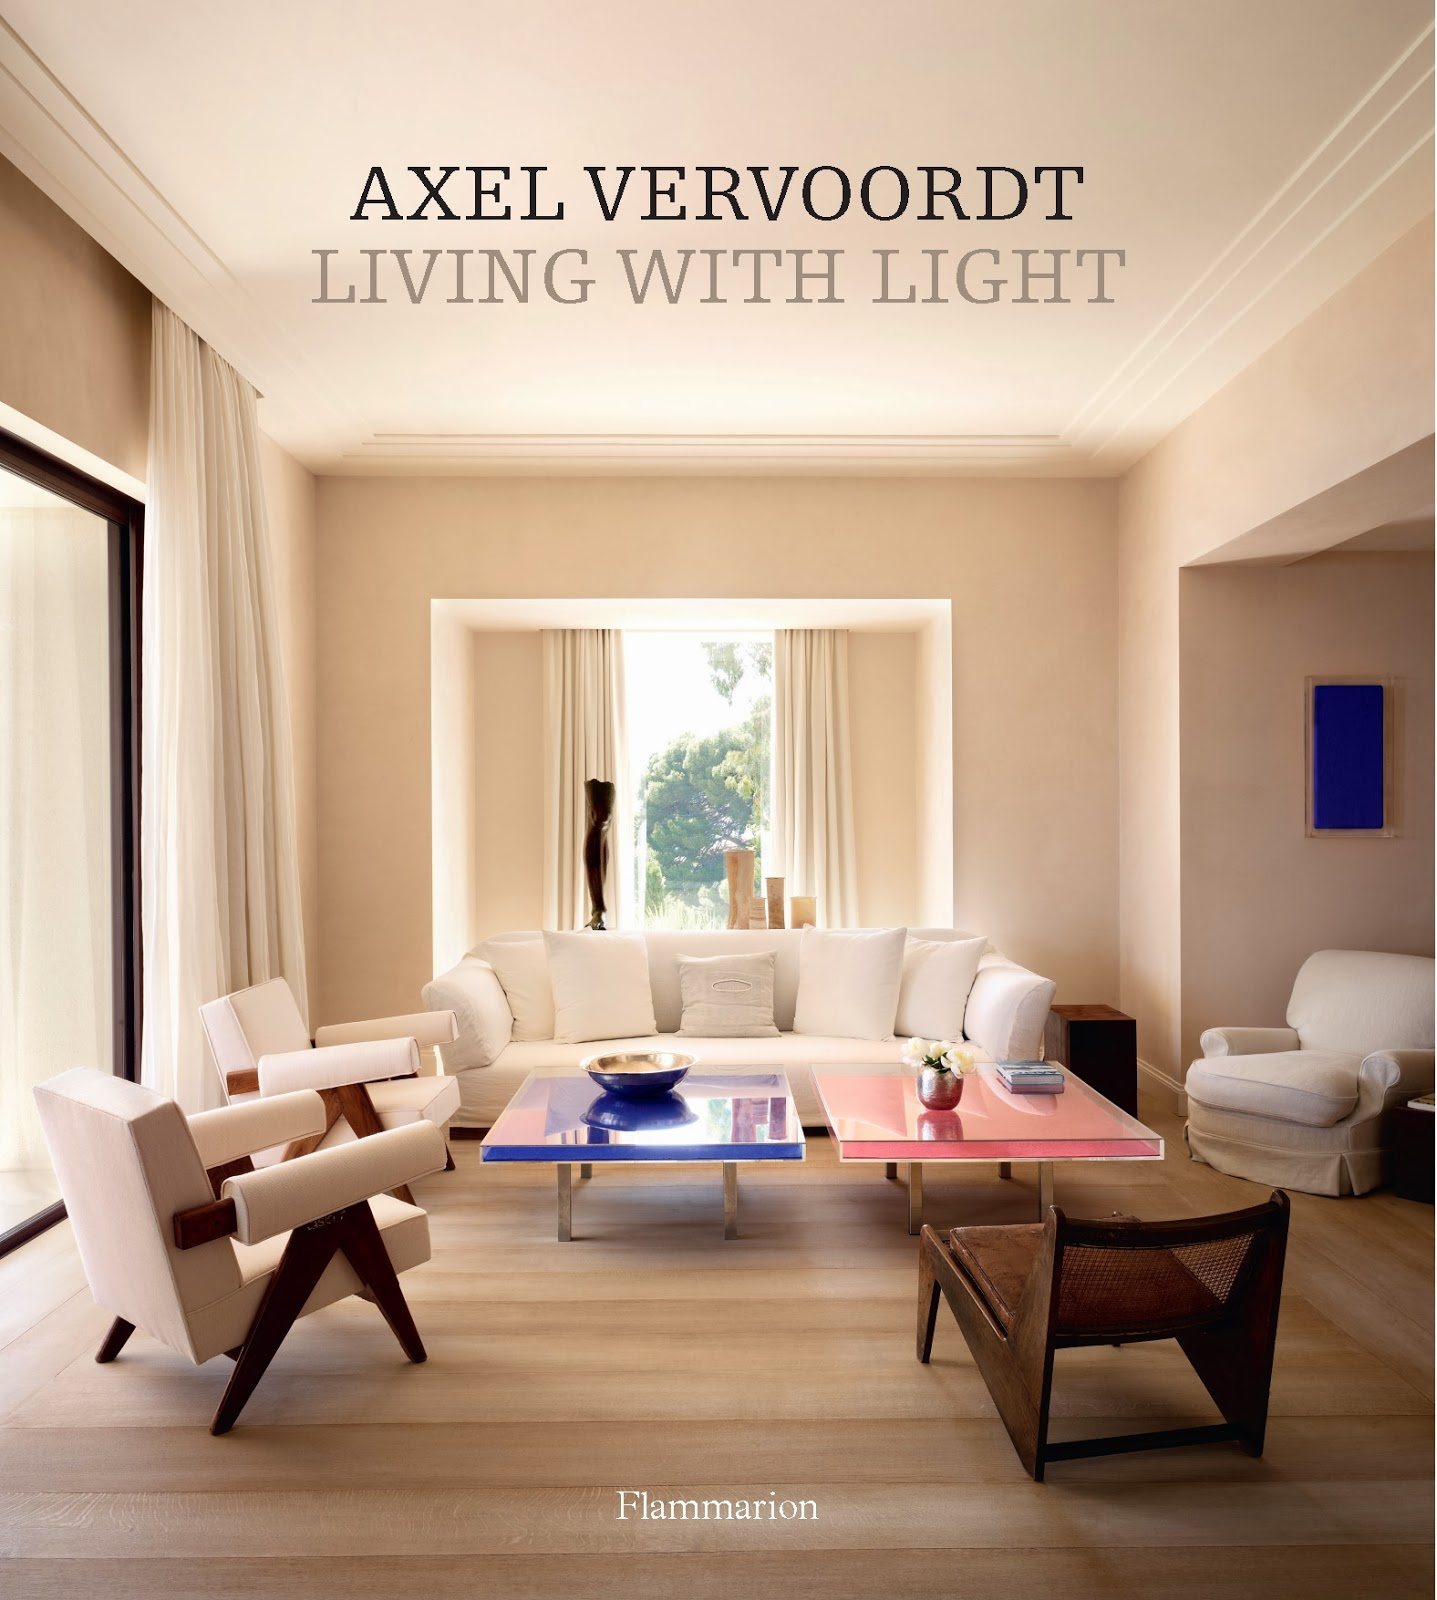 T H E V I S U A L V A M P Axel Vervoordt Living With Light